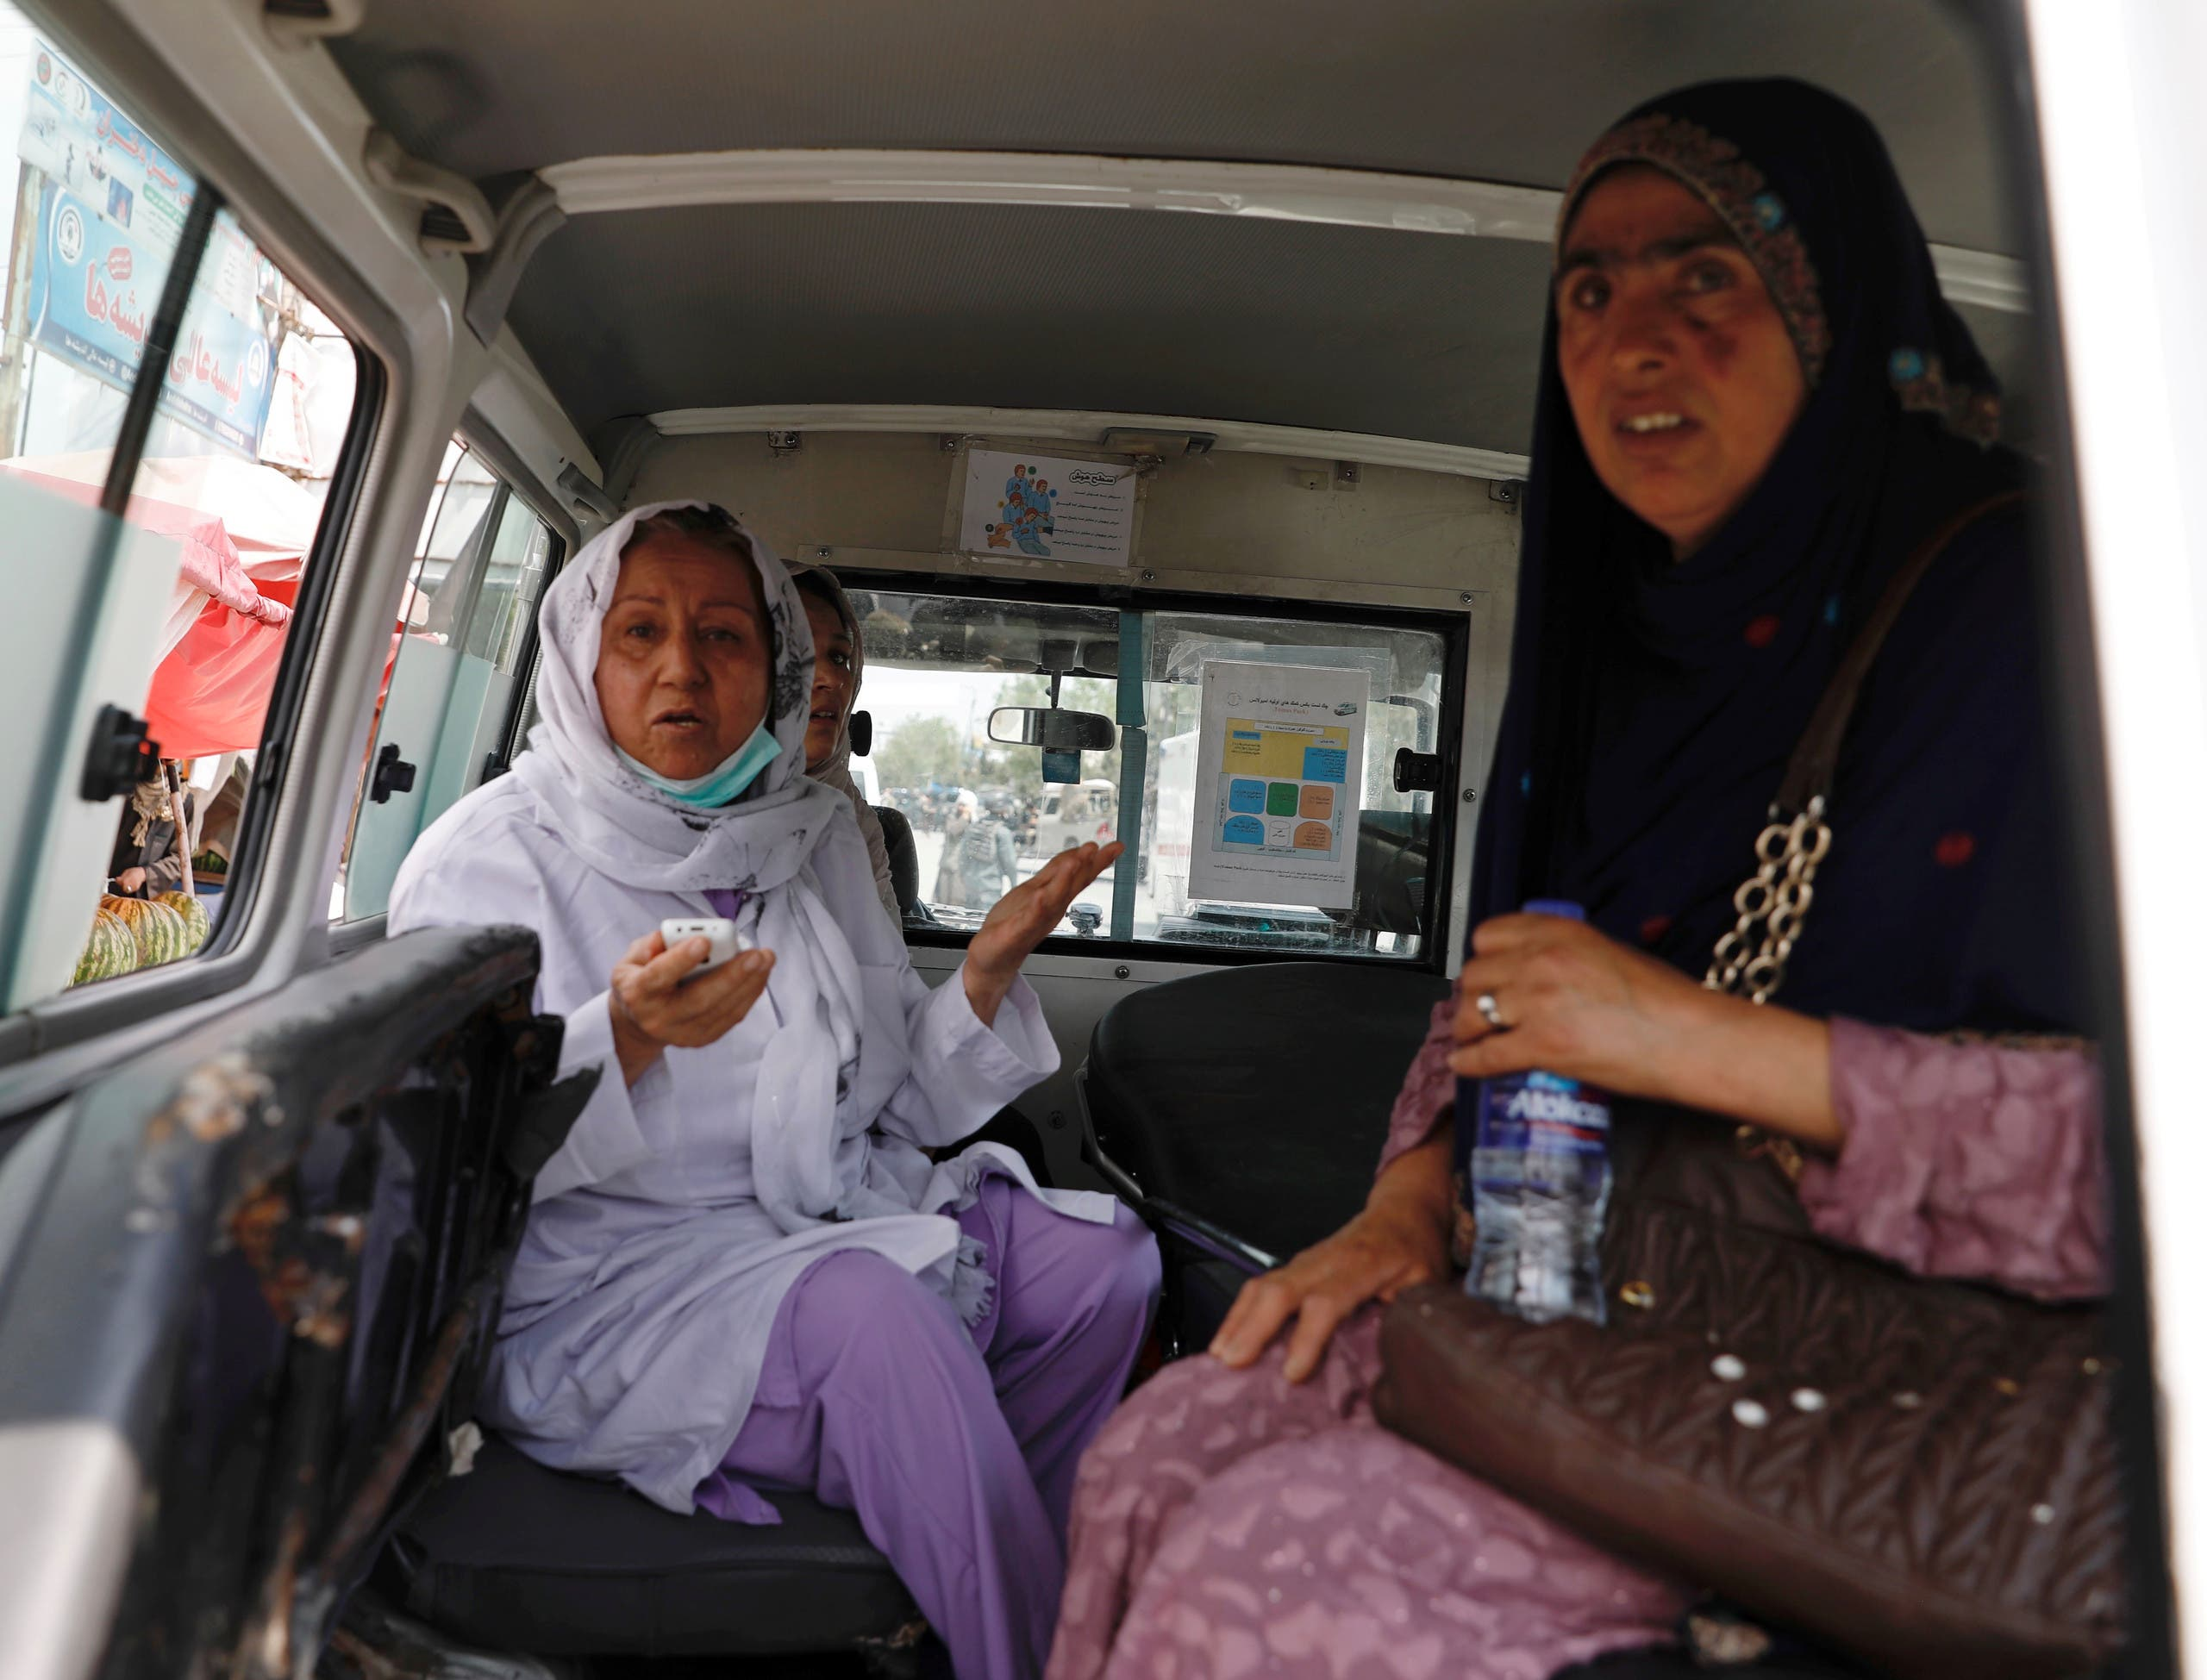 Afghan women sit in an ambulance after being rescued by security forces during an attack and gunfire at a hospital in Kabul, Afghanistan. (Reuters)